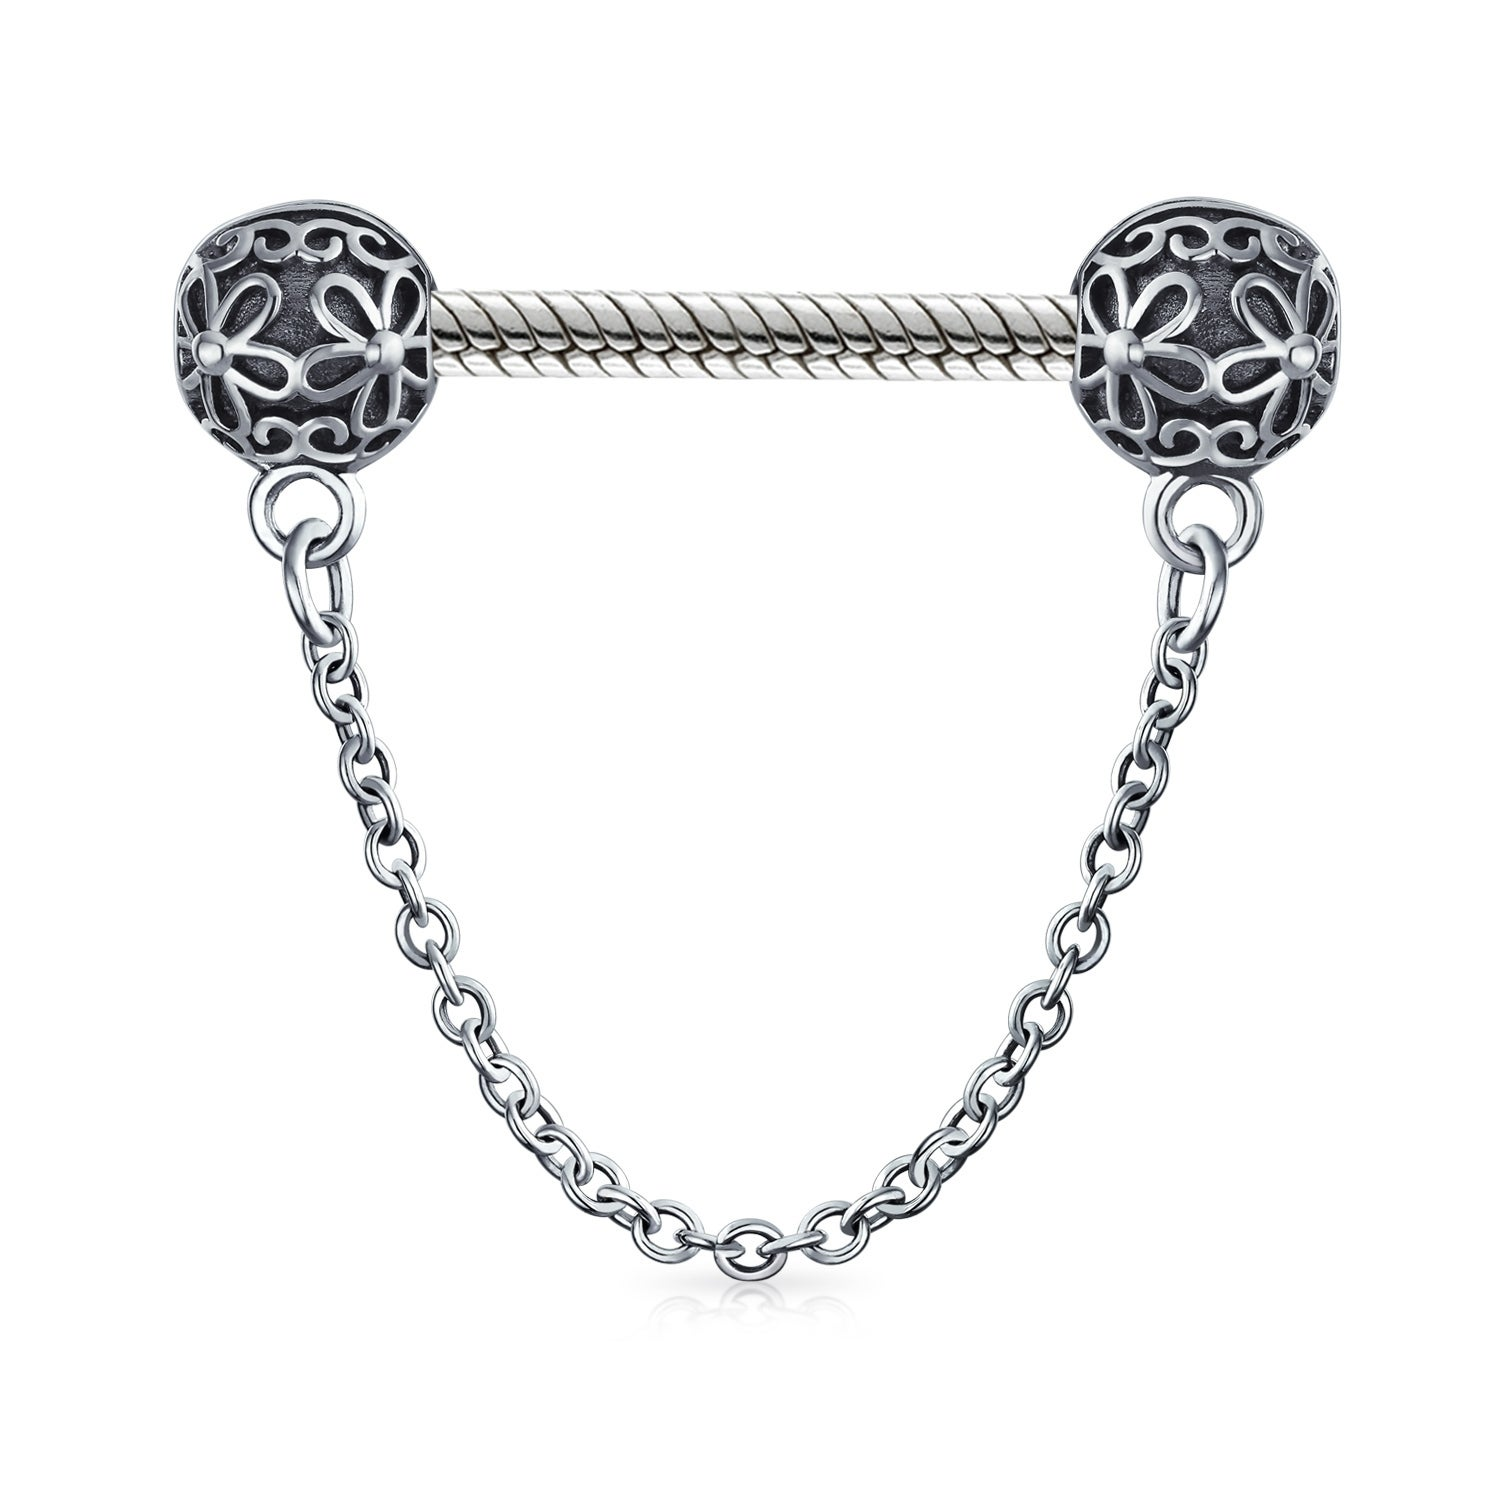 Handcuff Safety Chain Spacer Stopper Clasp Charm Bead For Women 925 Sterling Silver Fits European Bracelet